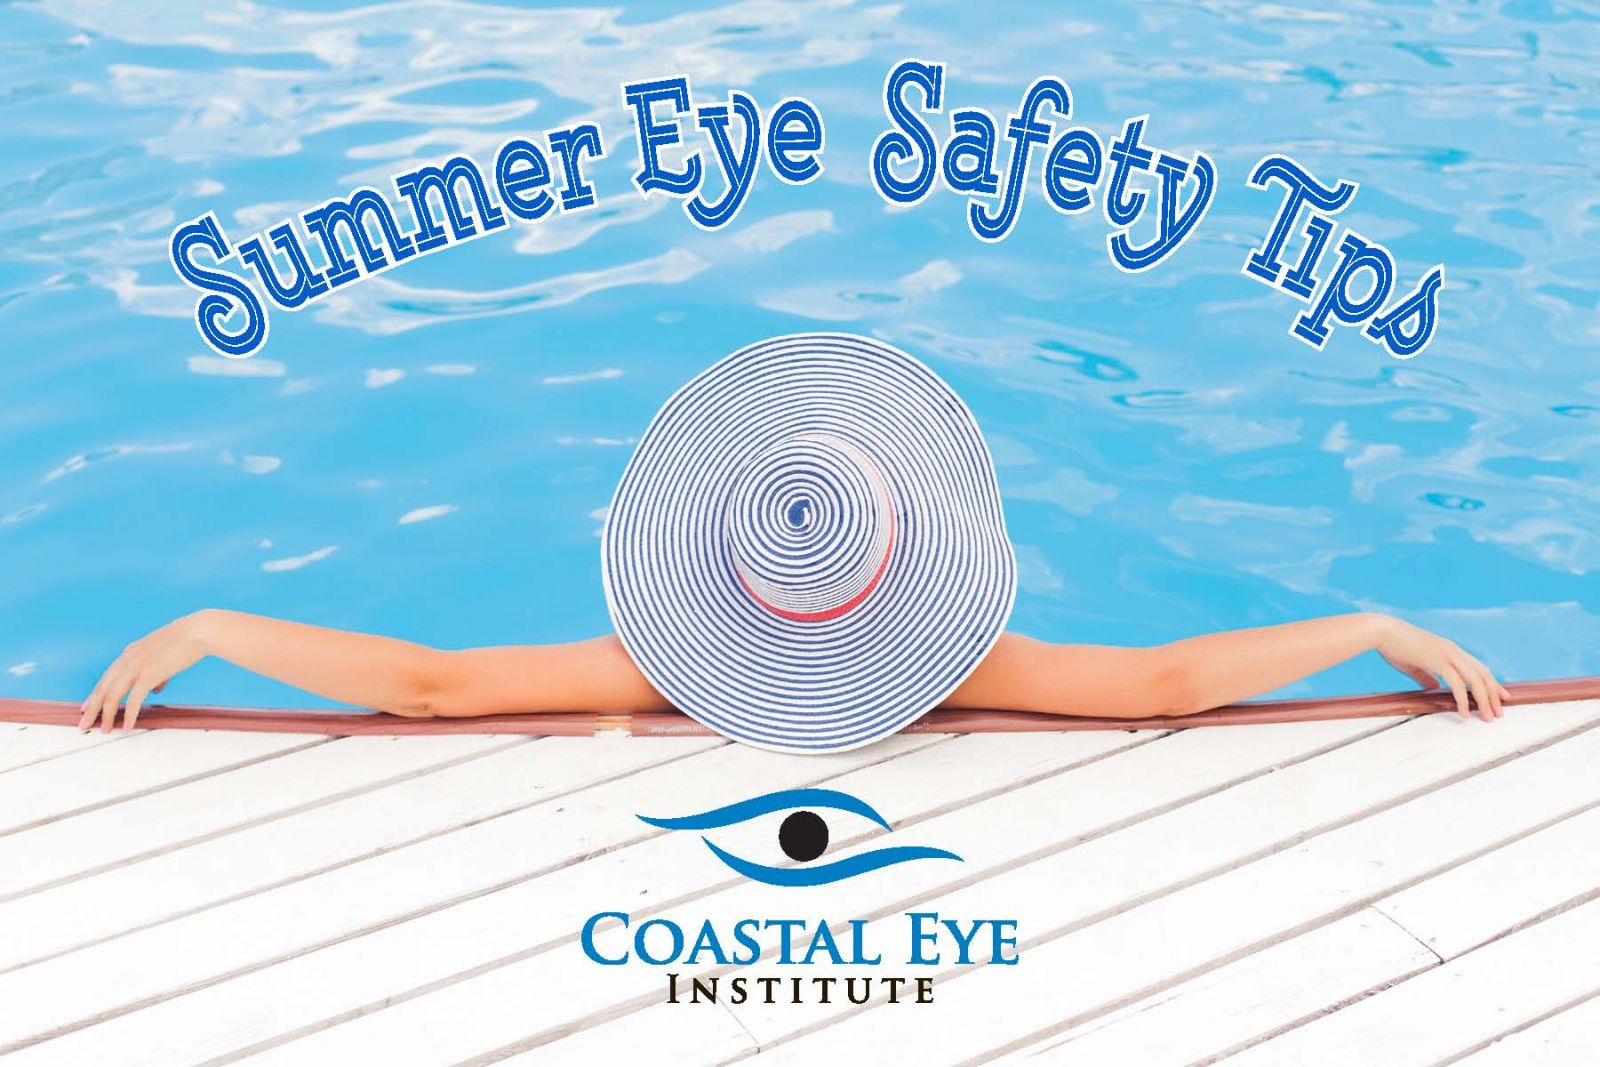 Summer eye safety tips image